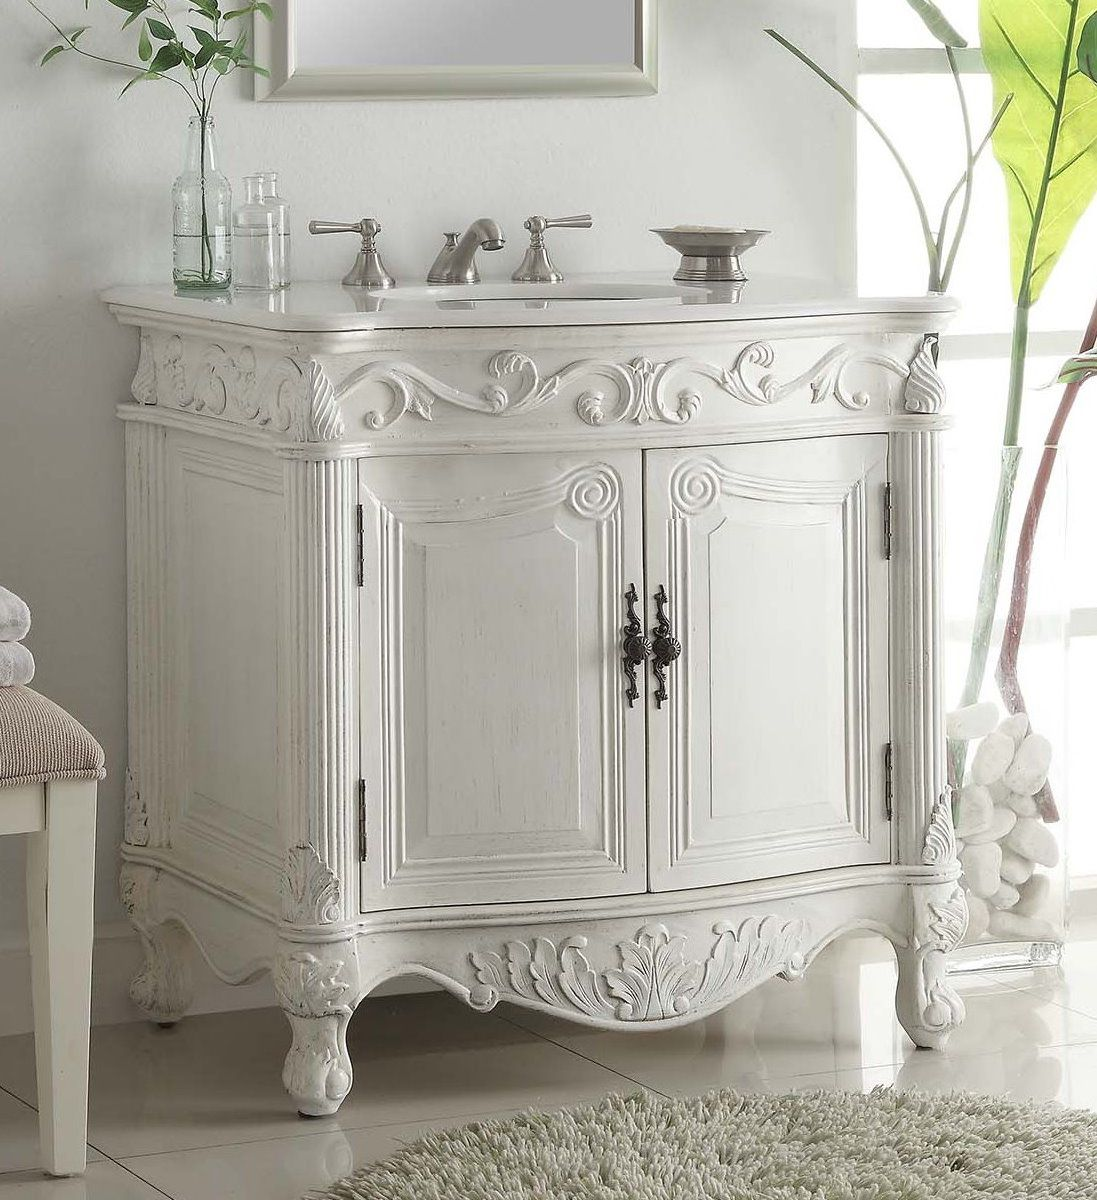 32 Inch Adelina Antique Bathroom Vanity White Finish With Images